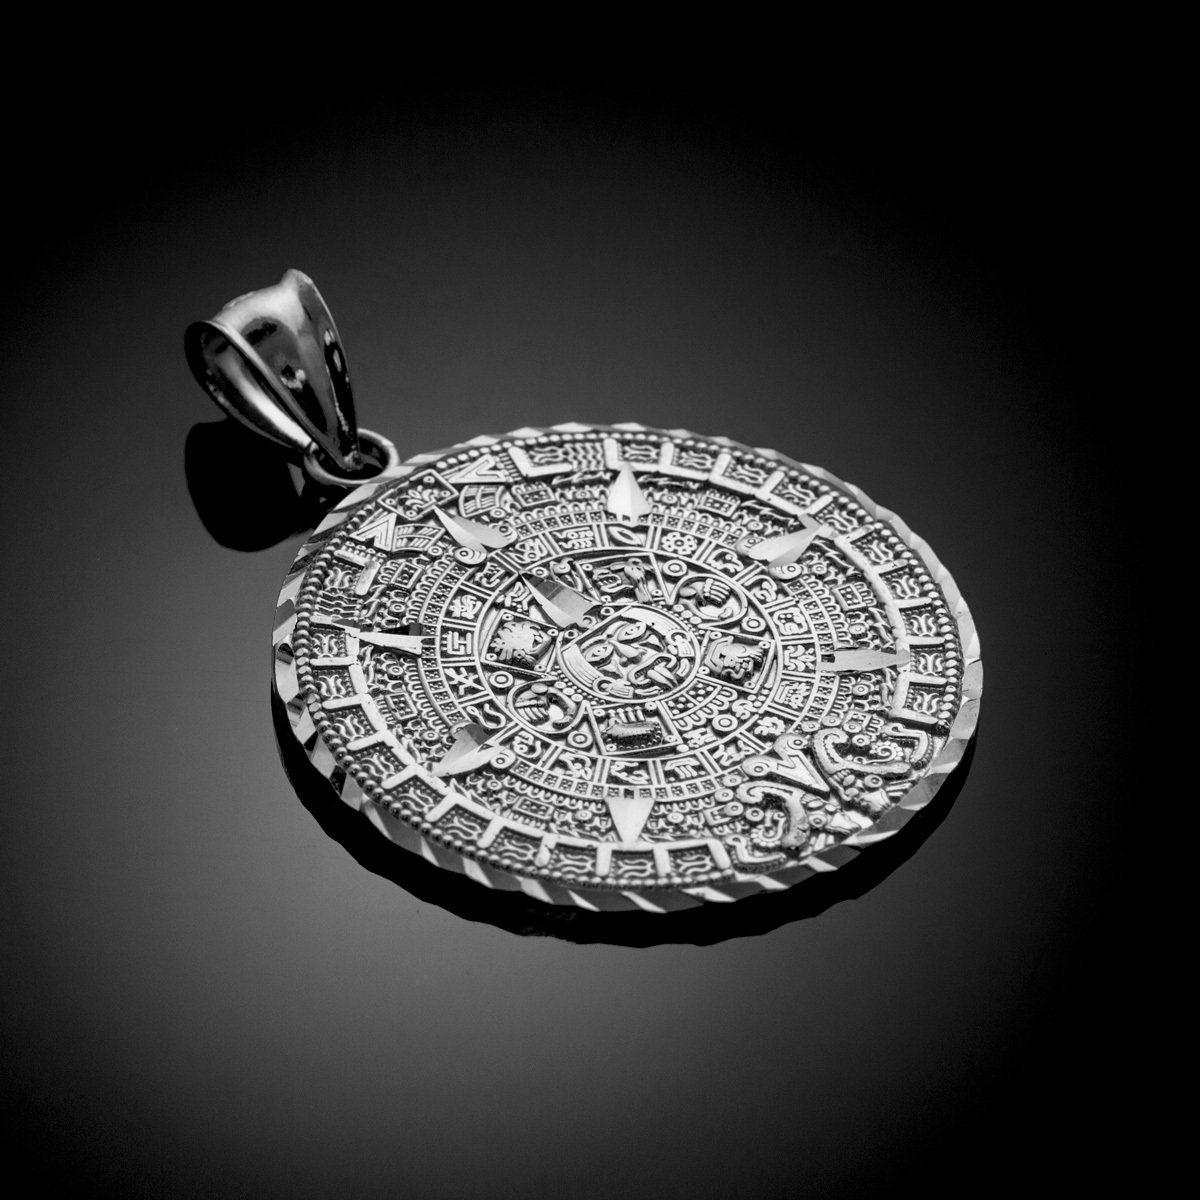 Amazon 925 sterling silver aztec charm mayan calendar pendant amazon 925 sterling silver aztec charm mayan calendar pendant 254 millimeters silver coin pendant jewelry aloadofball Image collections